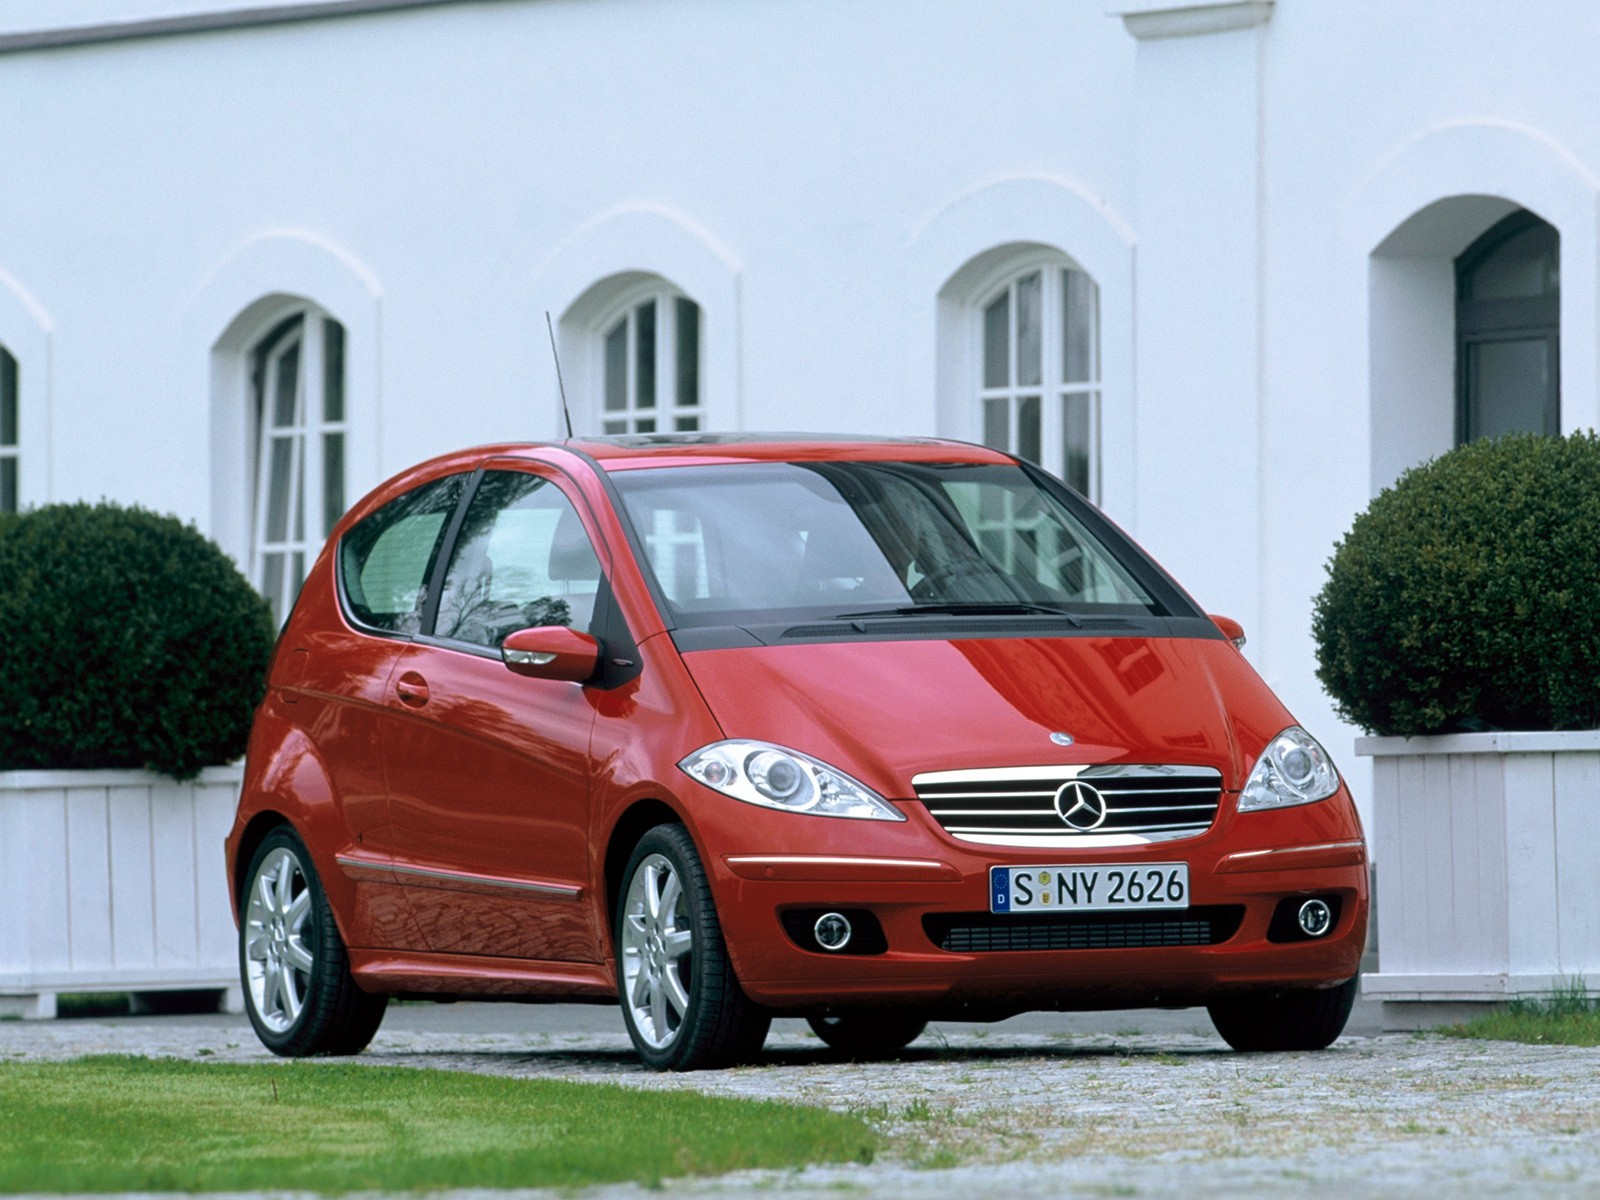 MERCEDES BENZ A Klasse 3 doors W169 Spezifikationen & Fotos 2004